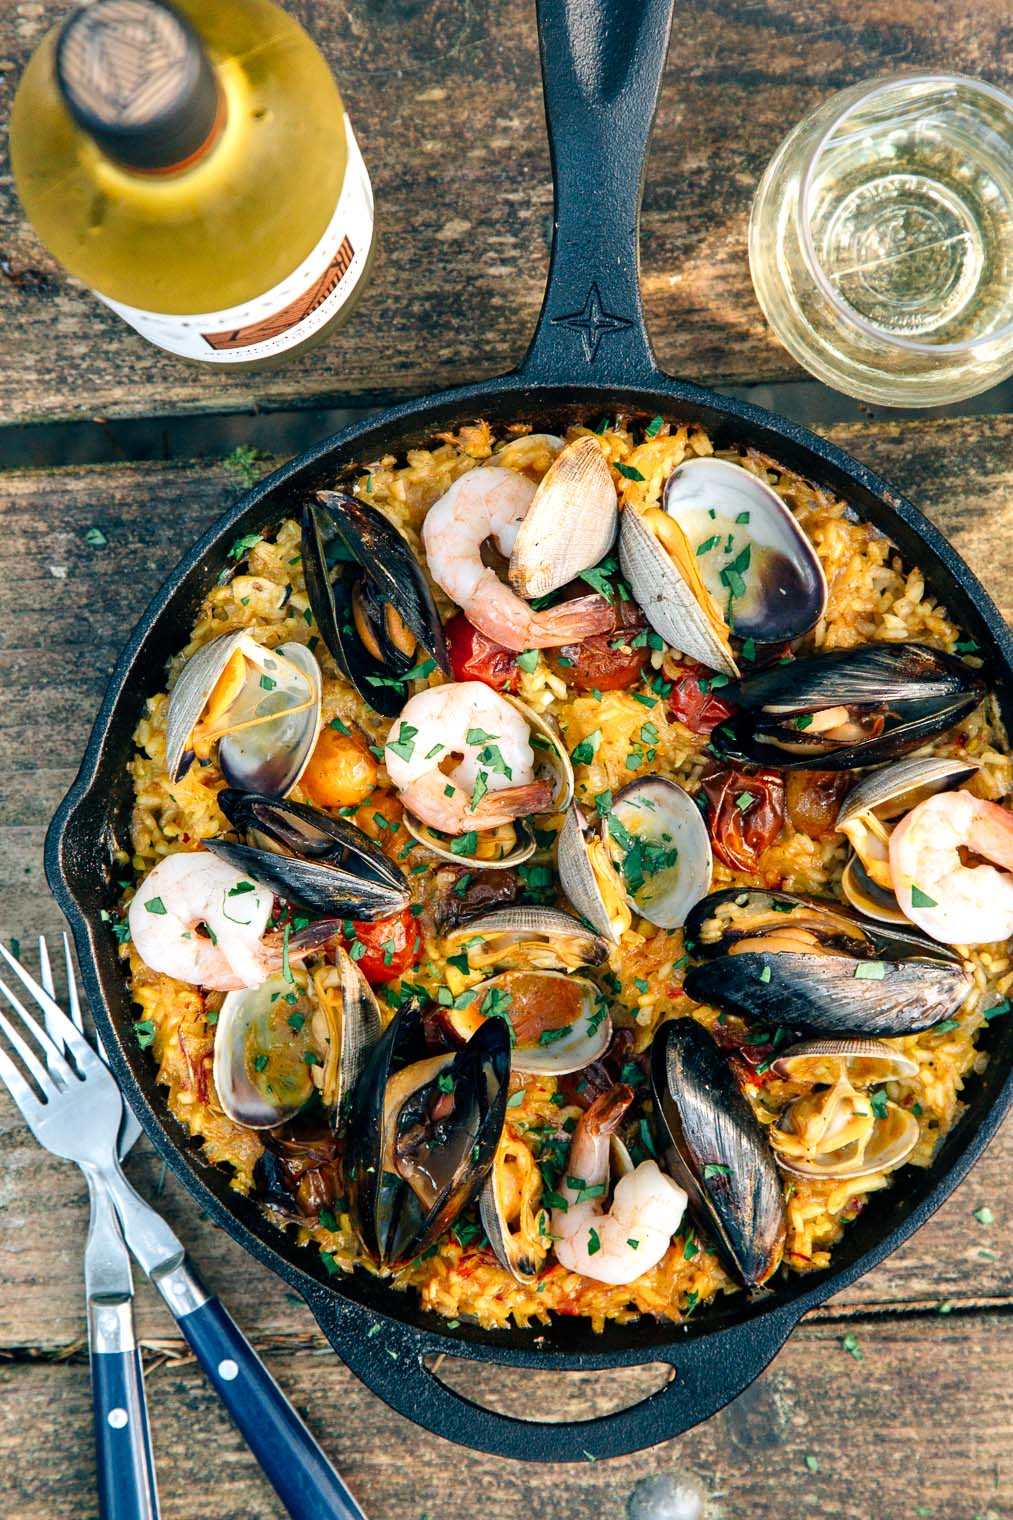 Paella in a cast iron skillet on a camp table